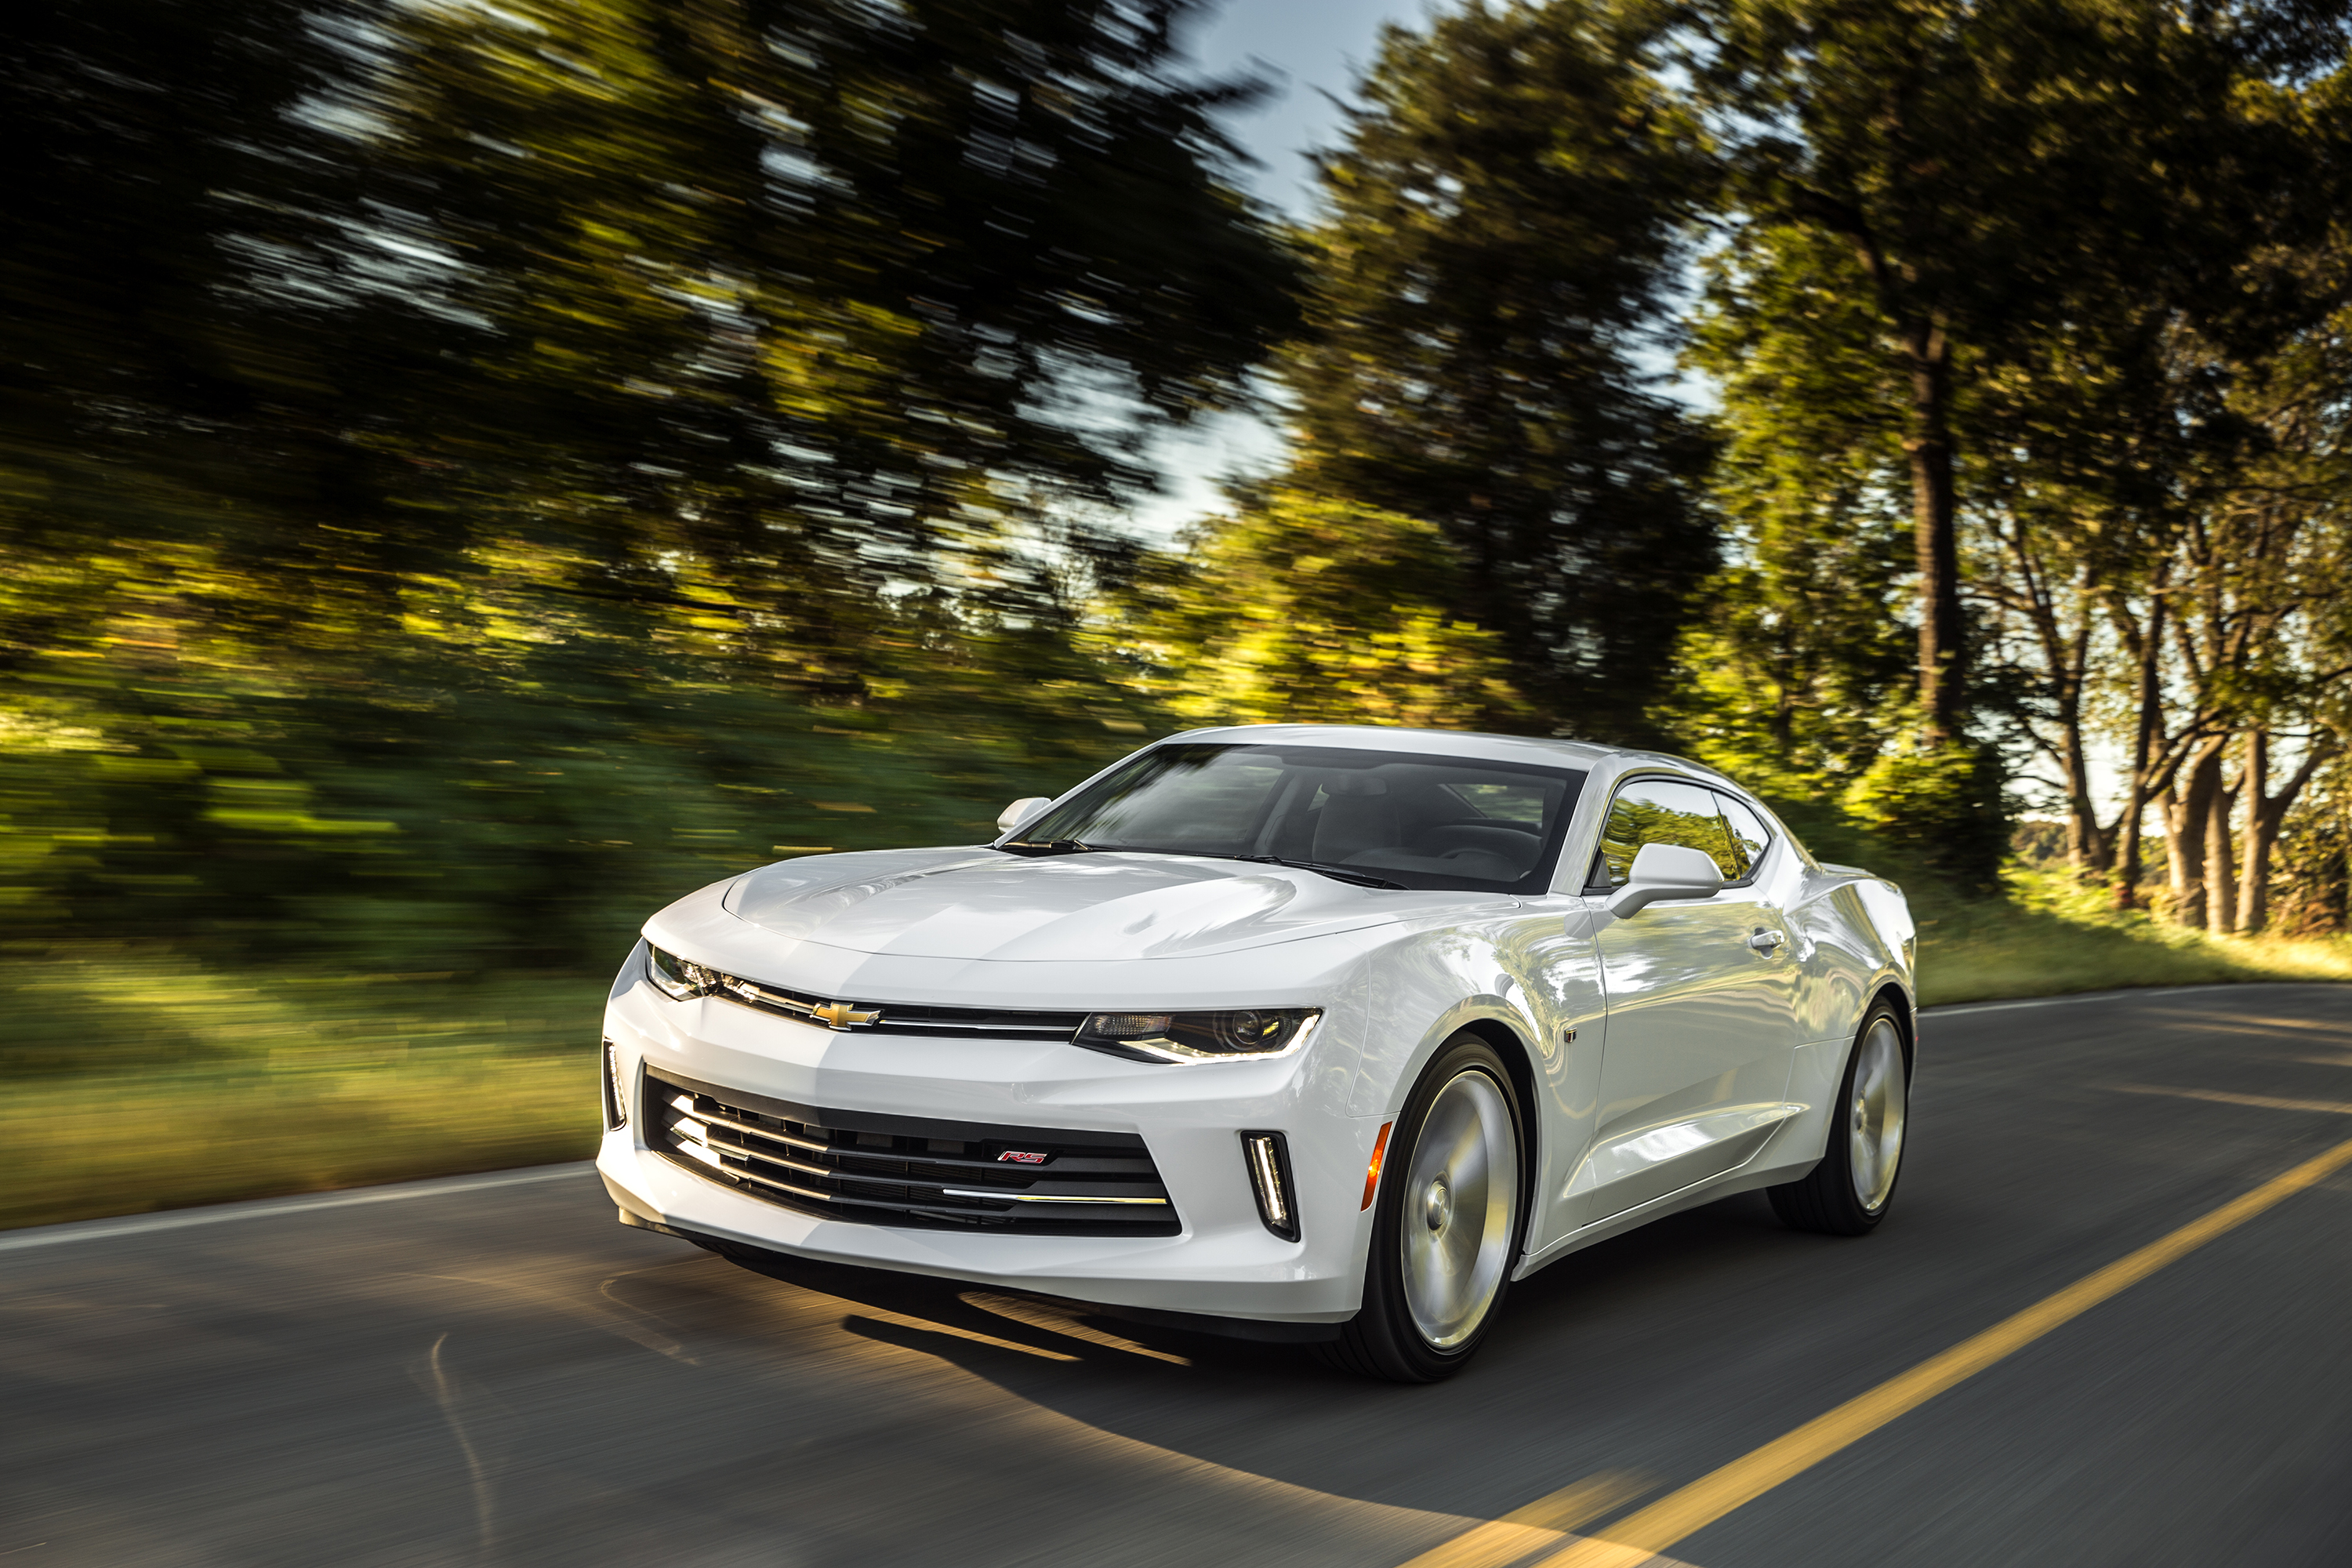 Kekurangan Chevrolet Camaro 2016 Review